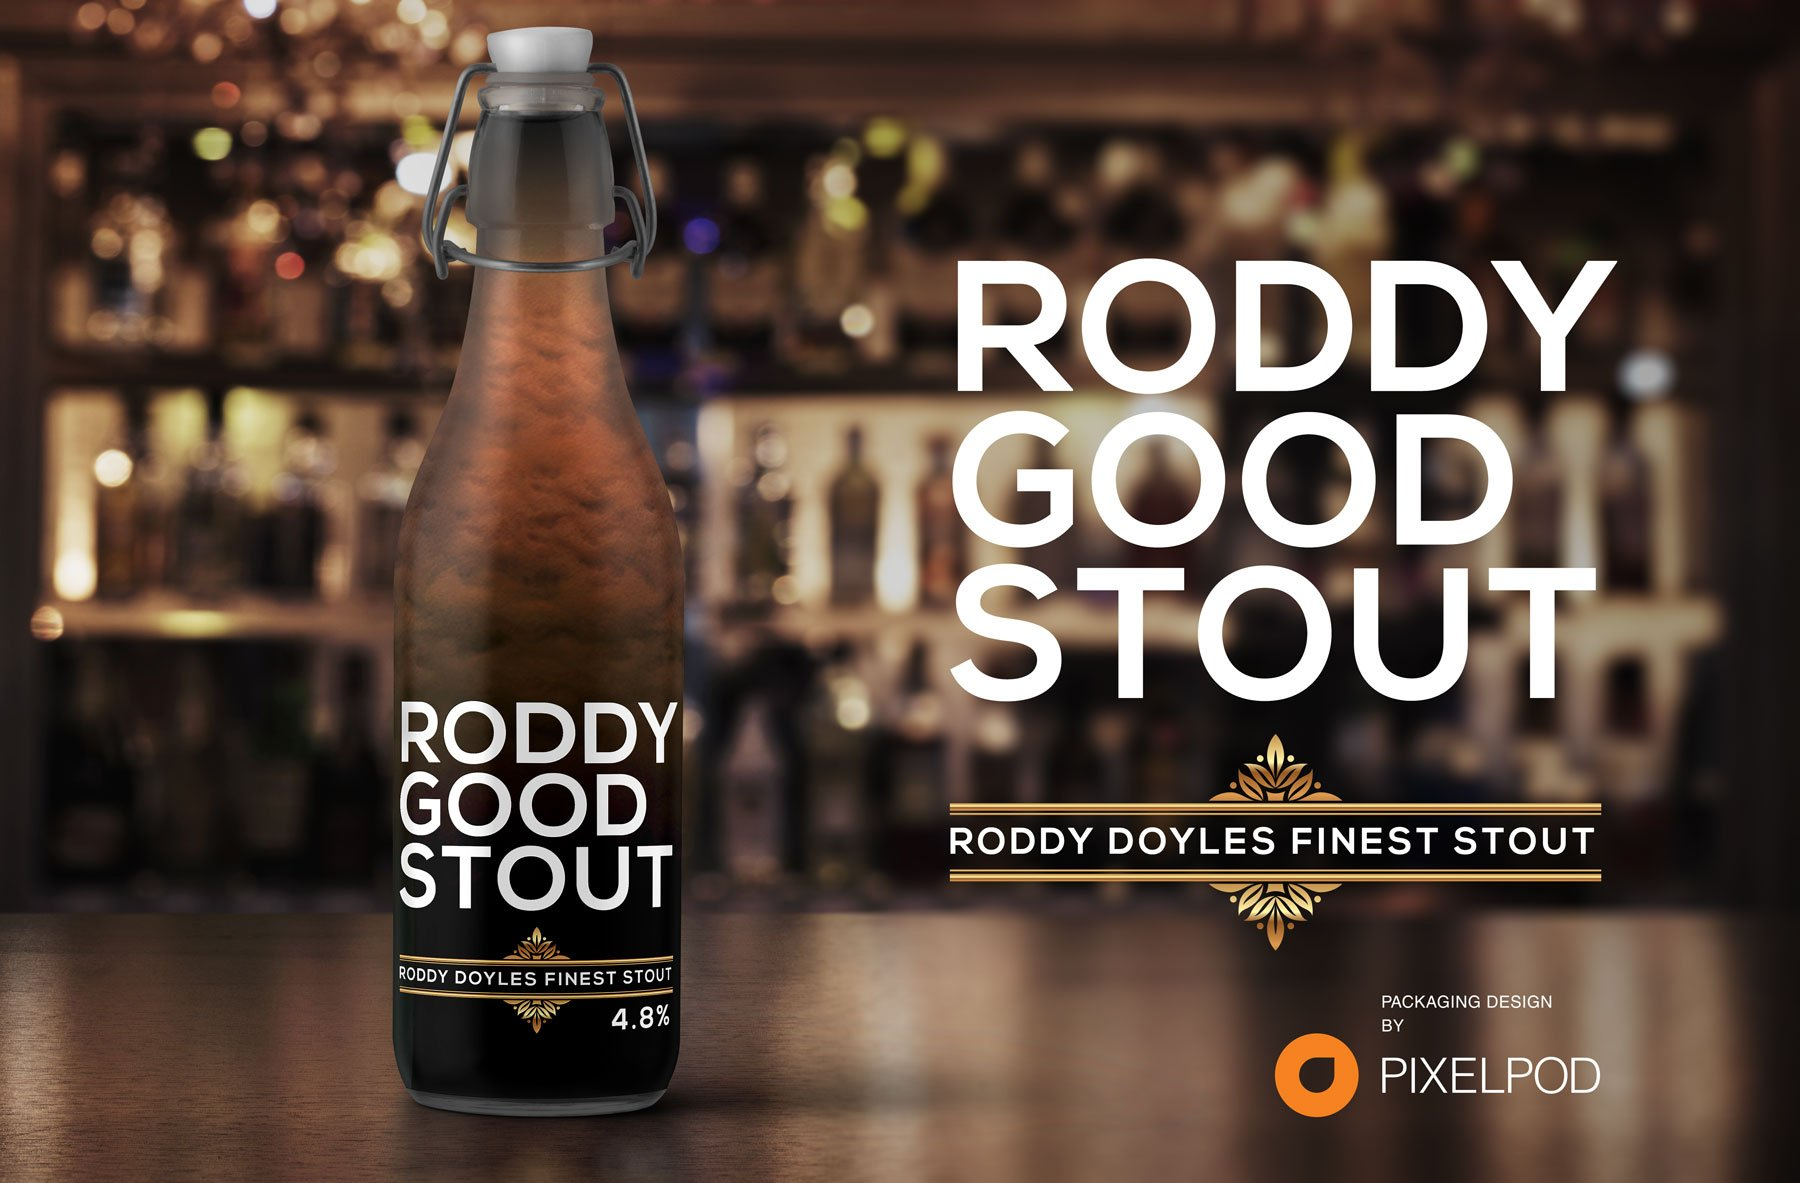 Roddy Doyle Stout, packaging design by pixelpod